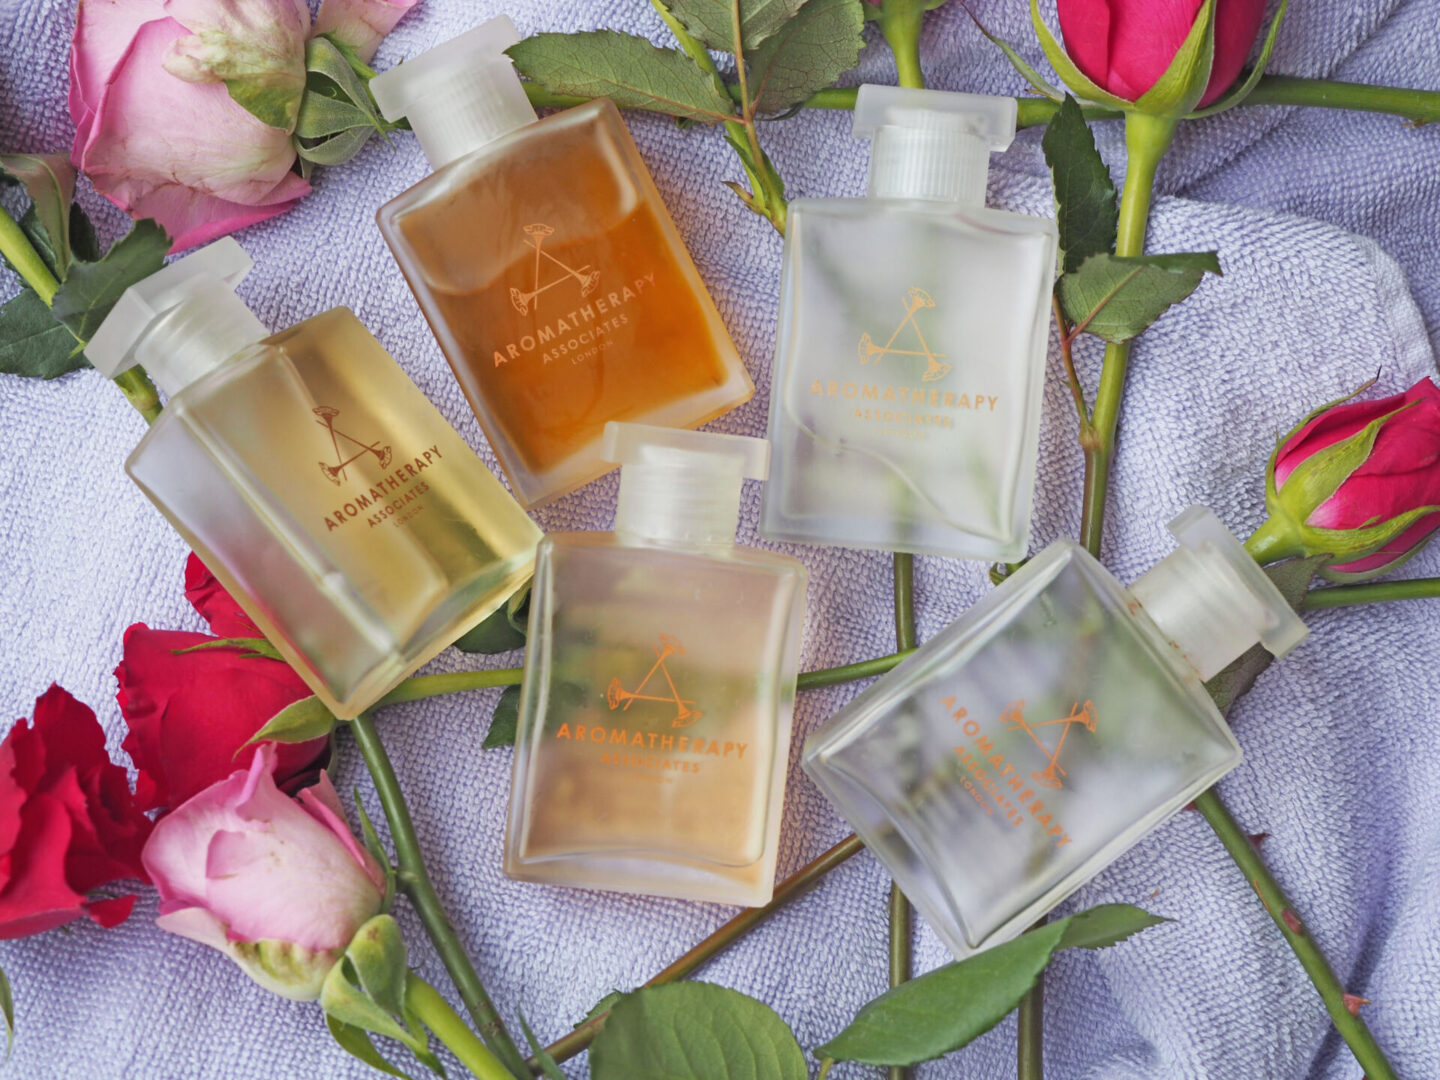 aromatherapy associates bath and shower oils review and overview